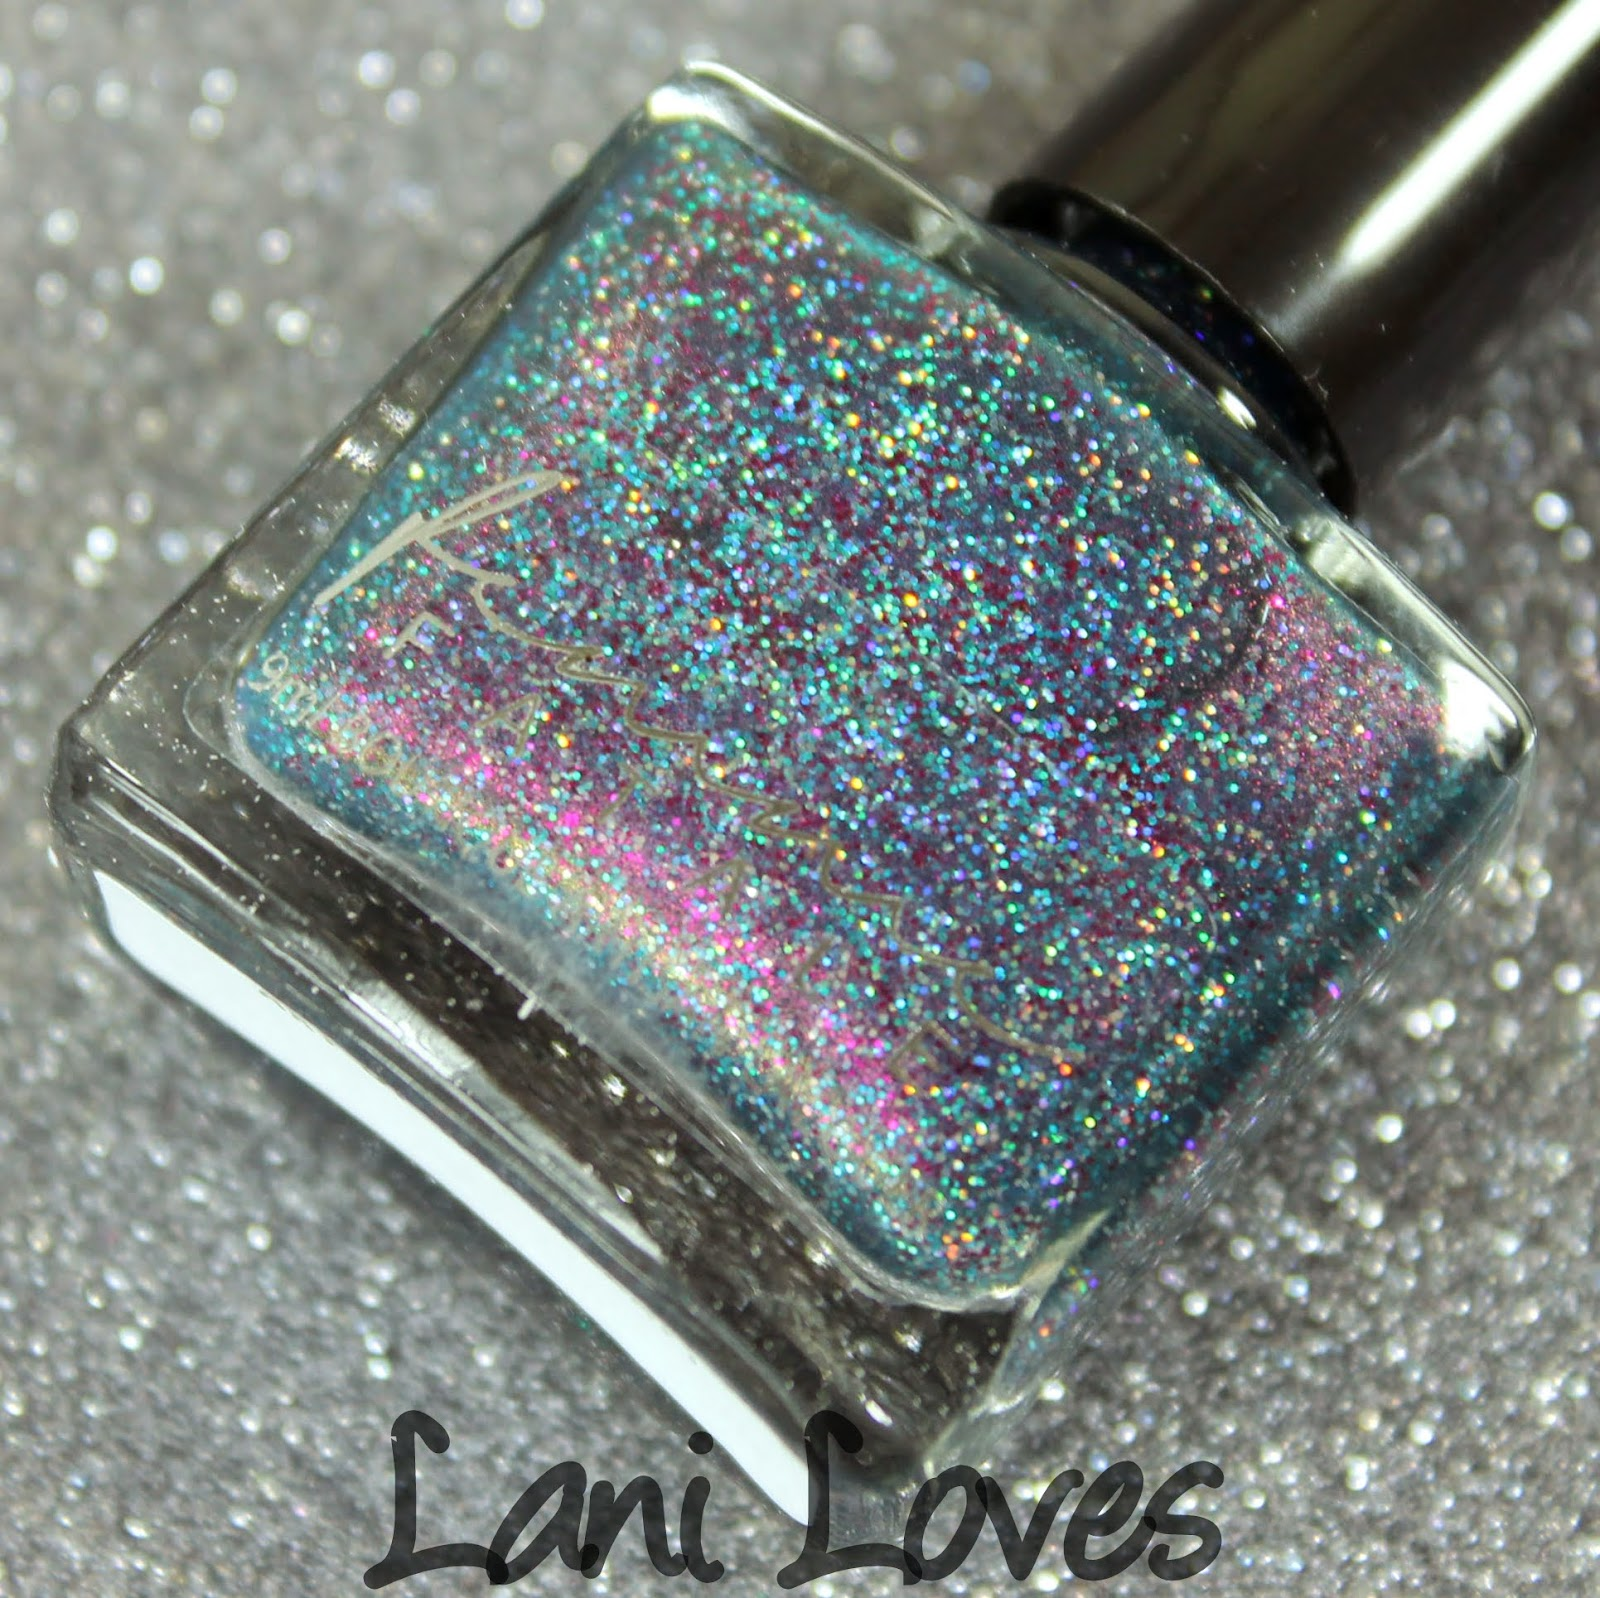 Femme Fatale Cosmetics - Art of Witchcraft nail polish swatches & review